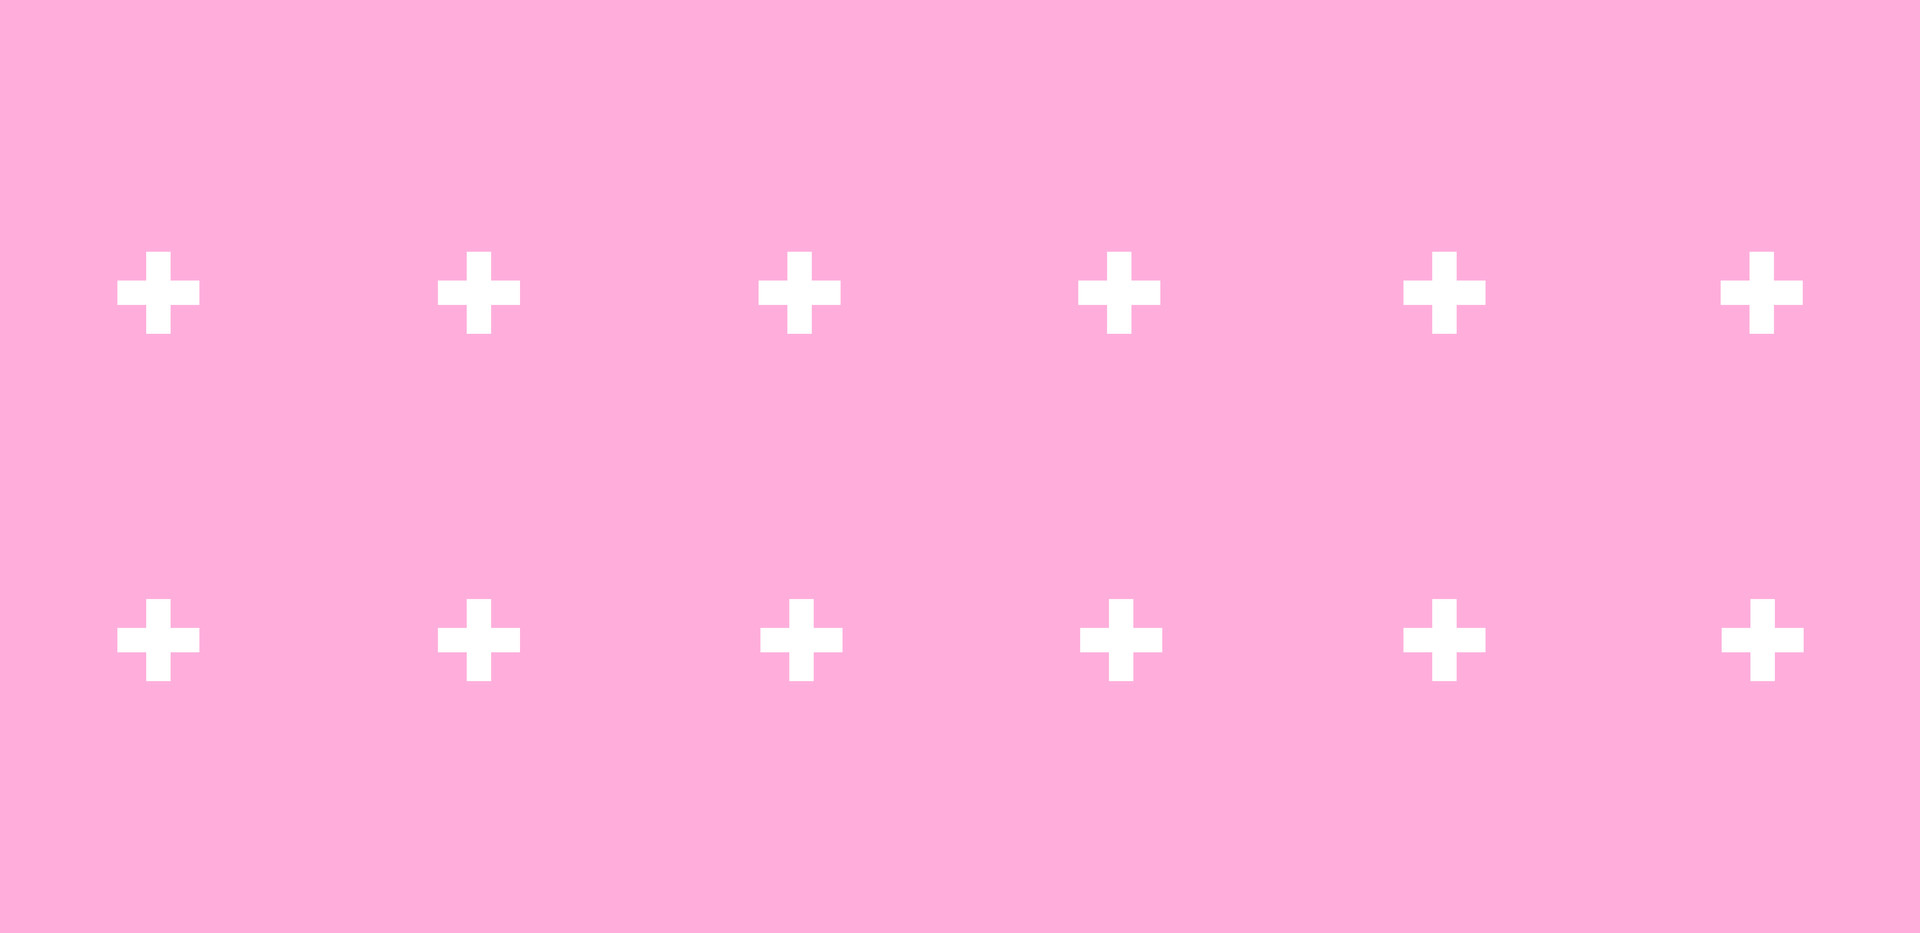 + + + . Perfect Pink Plus Signs